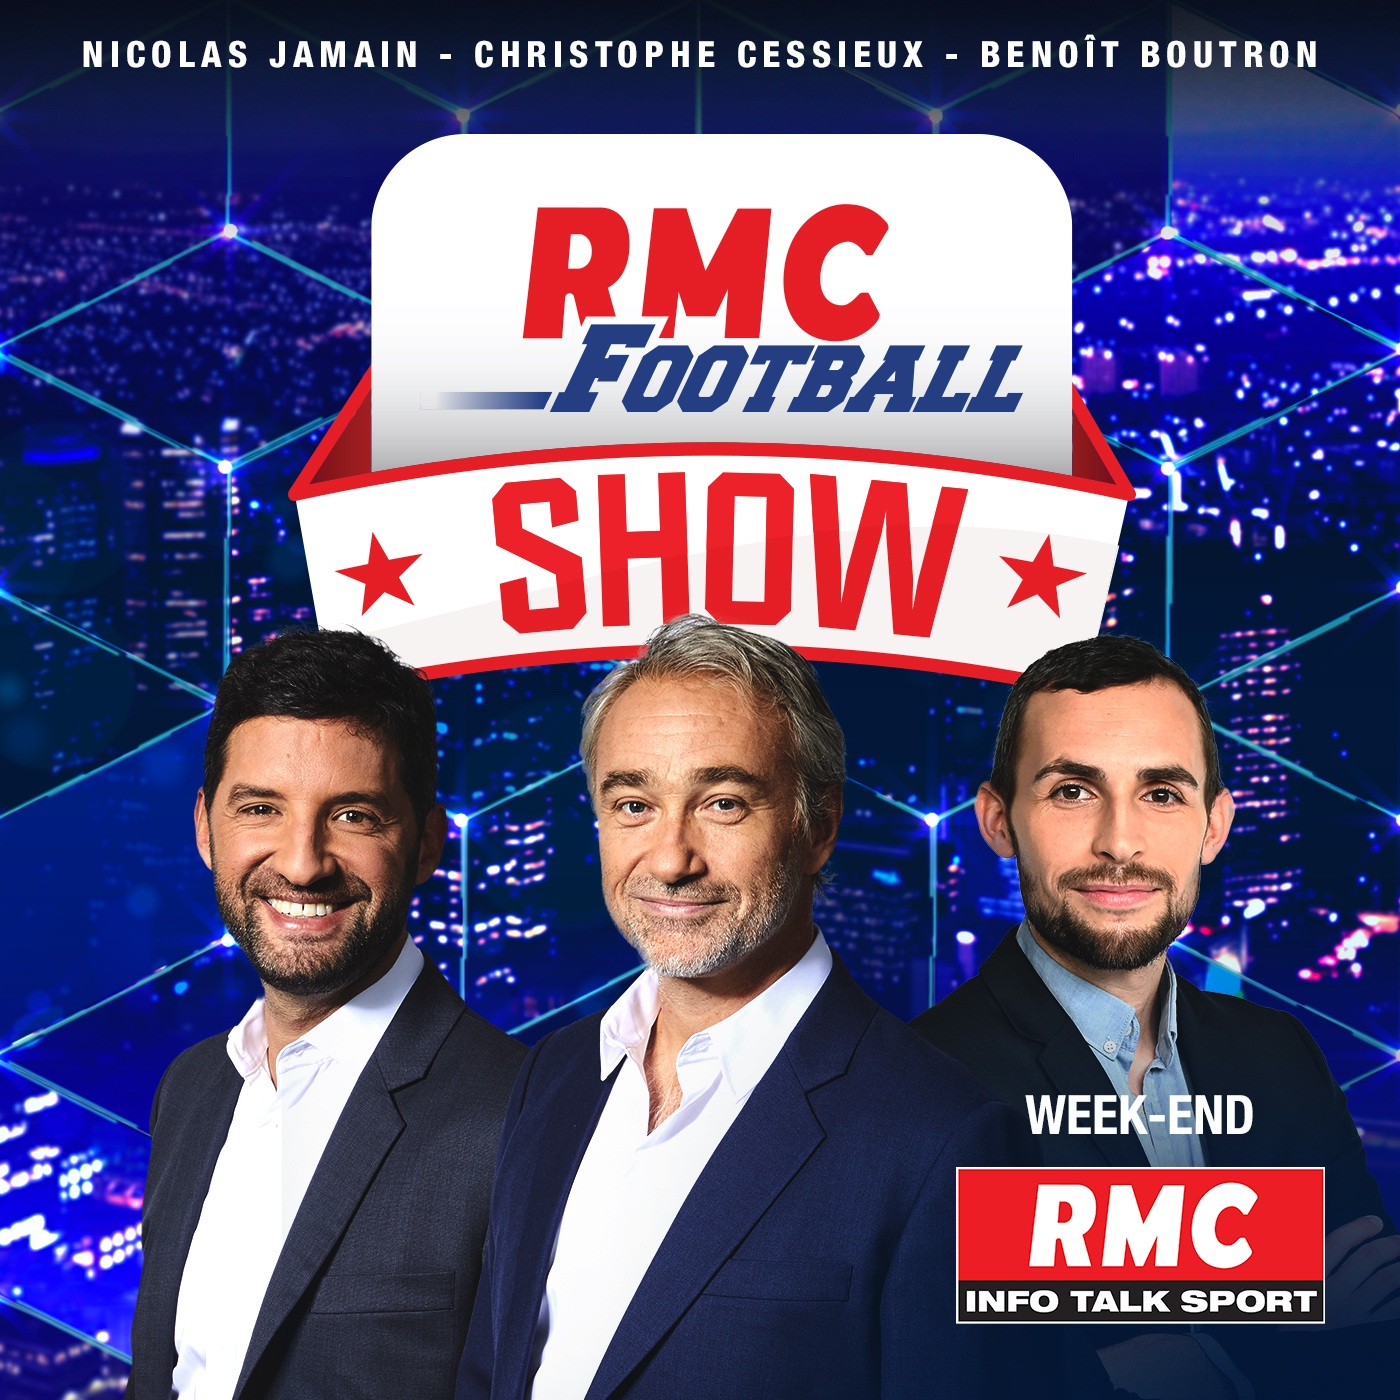 Image 1: Podcast RMC Football Show